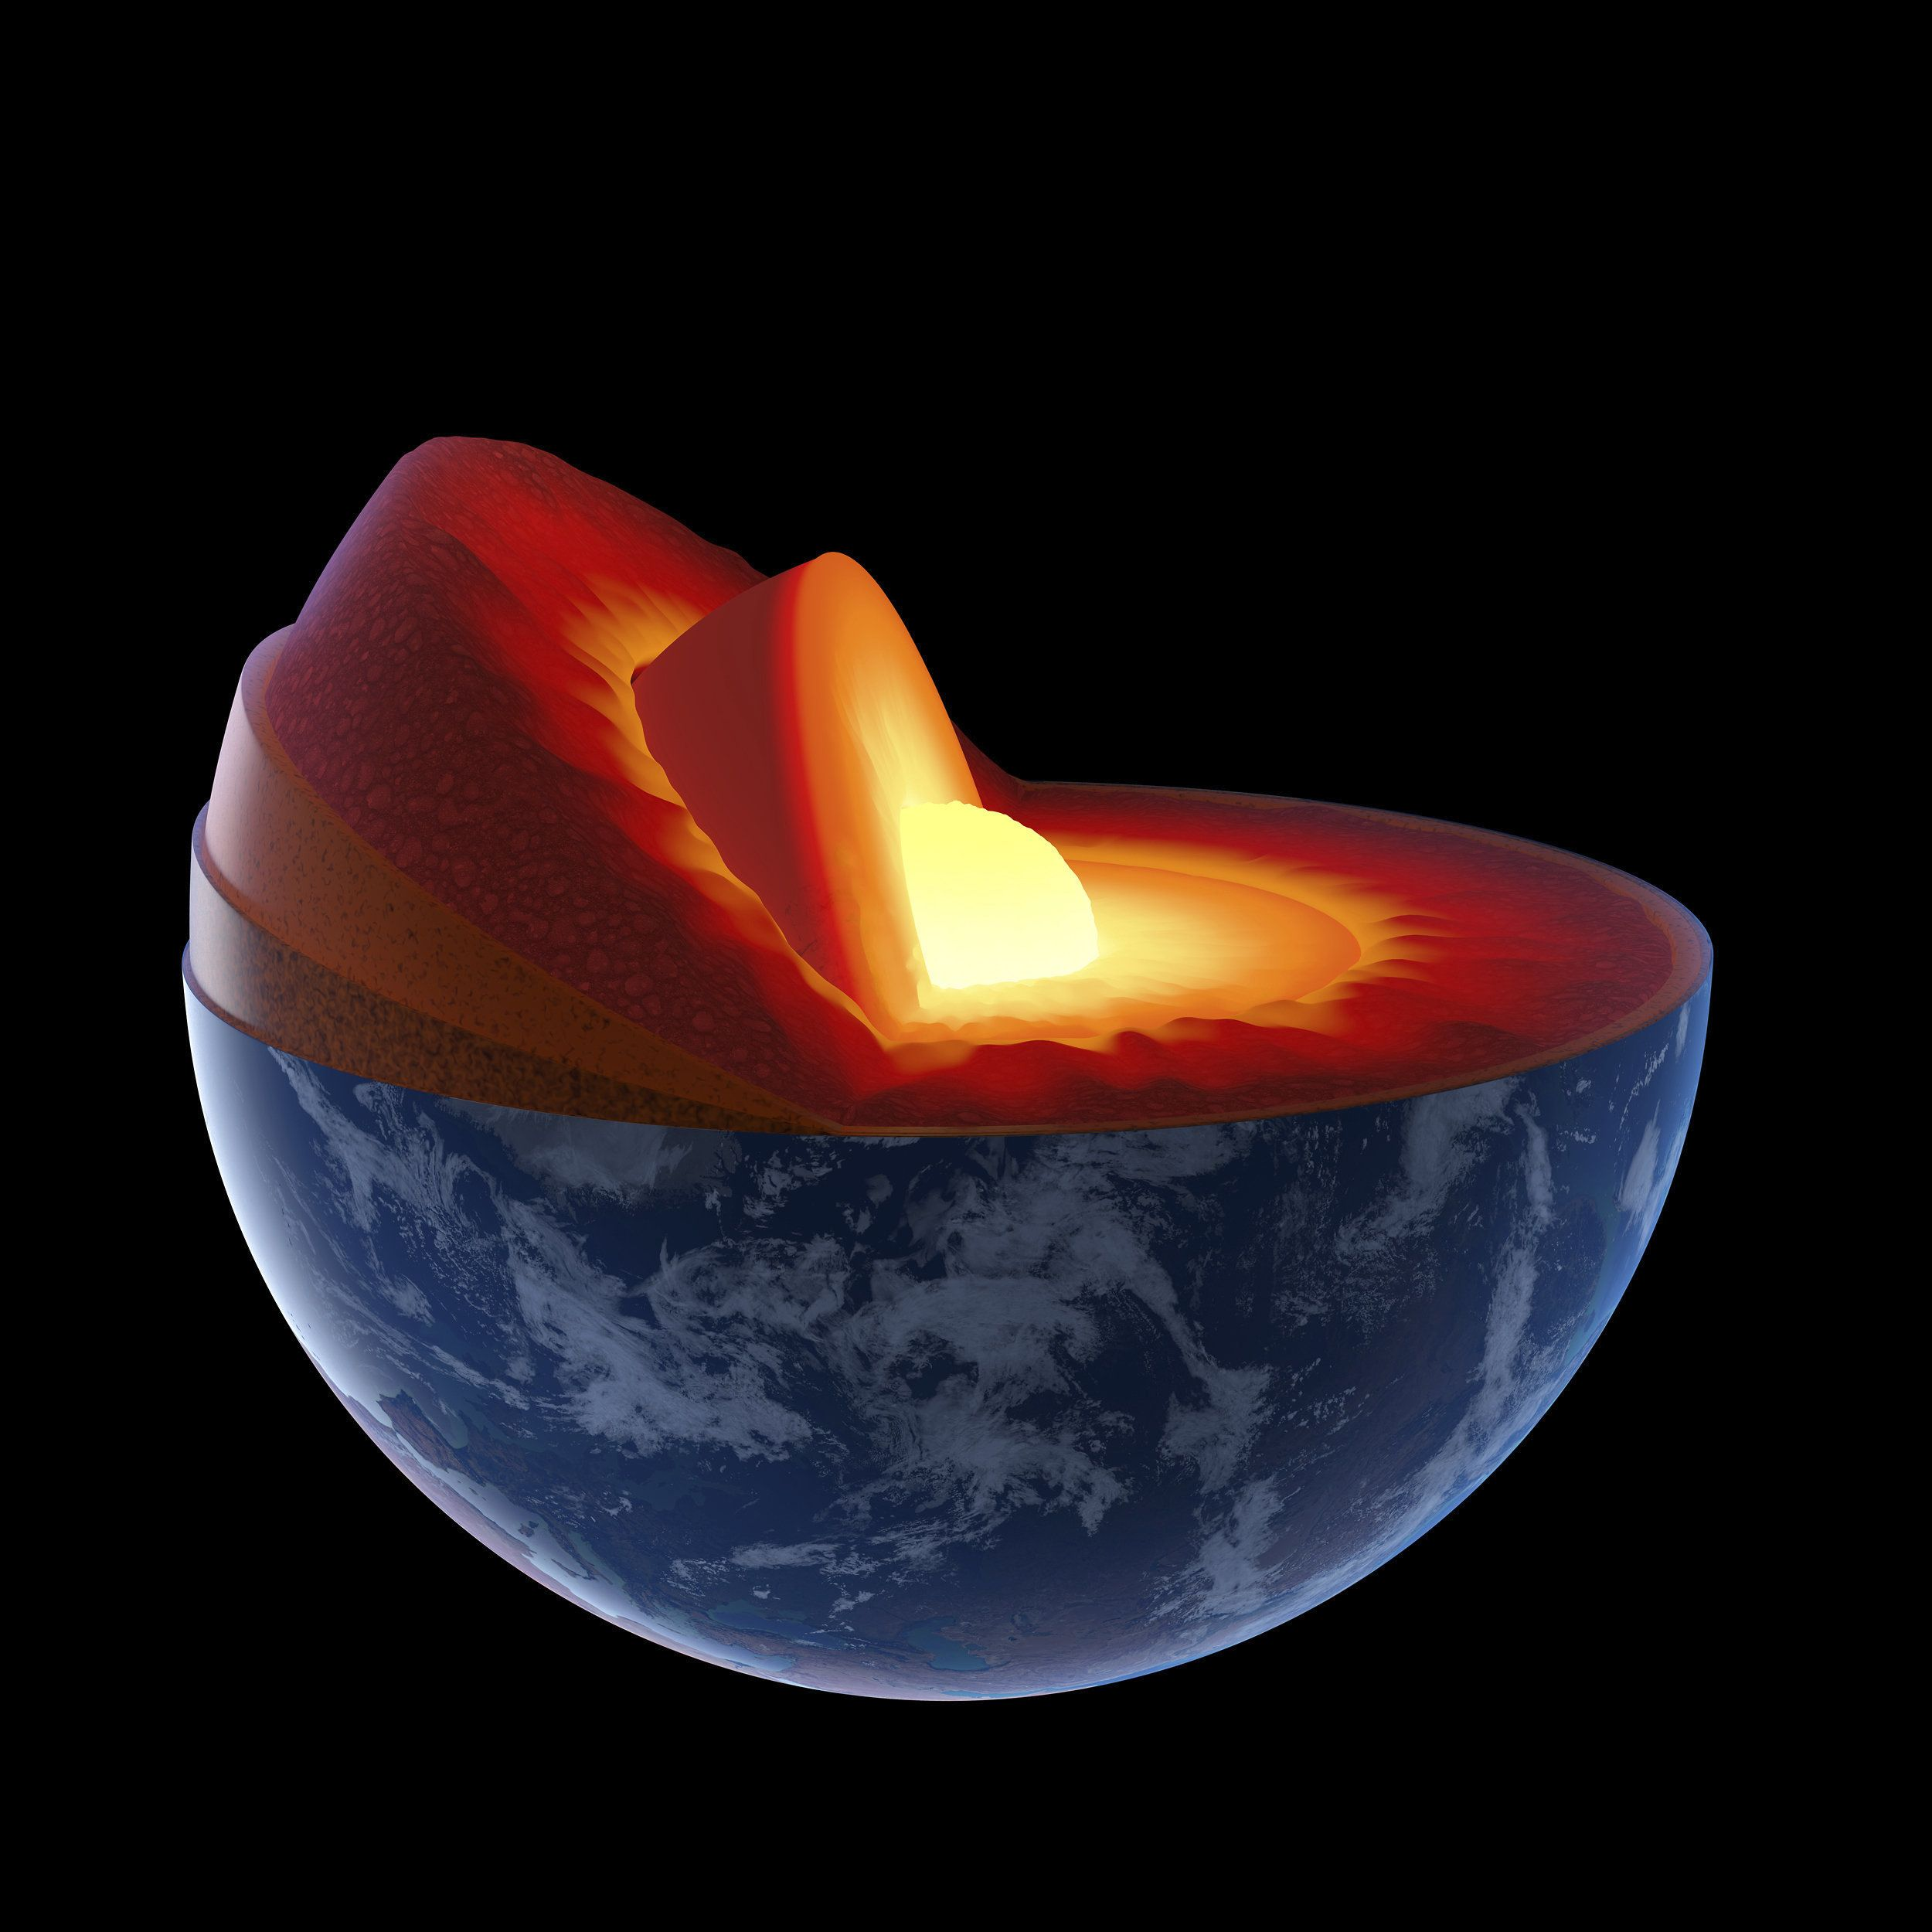 Image result for earth's core